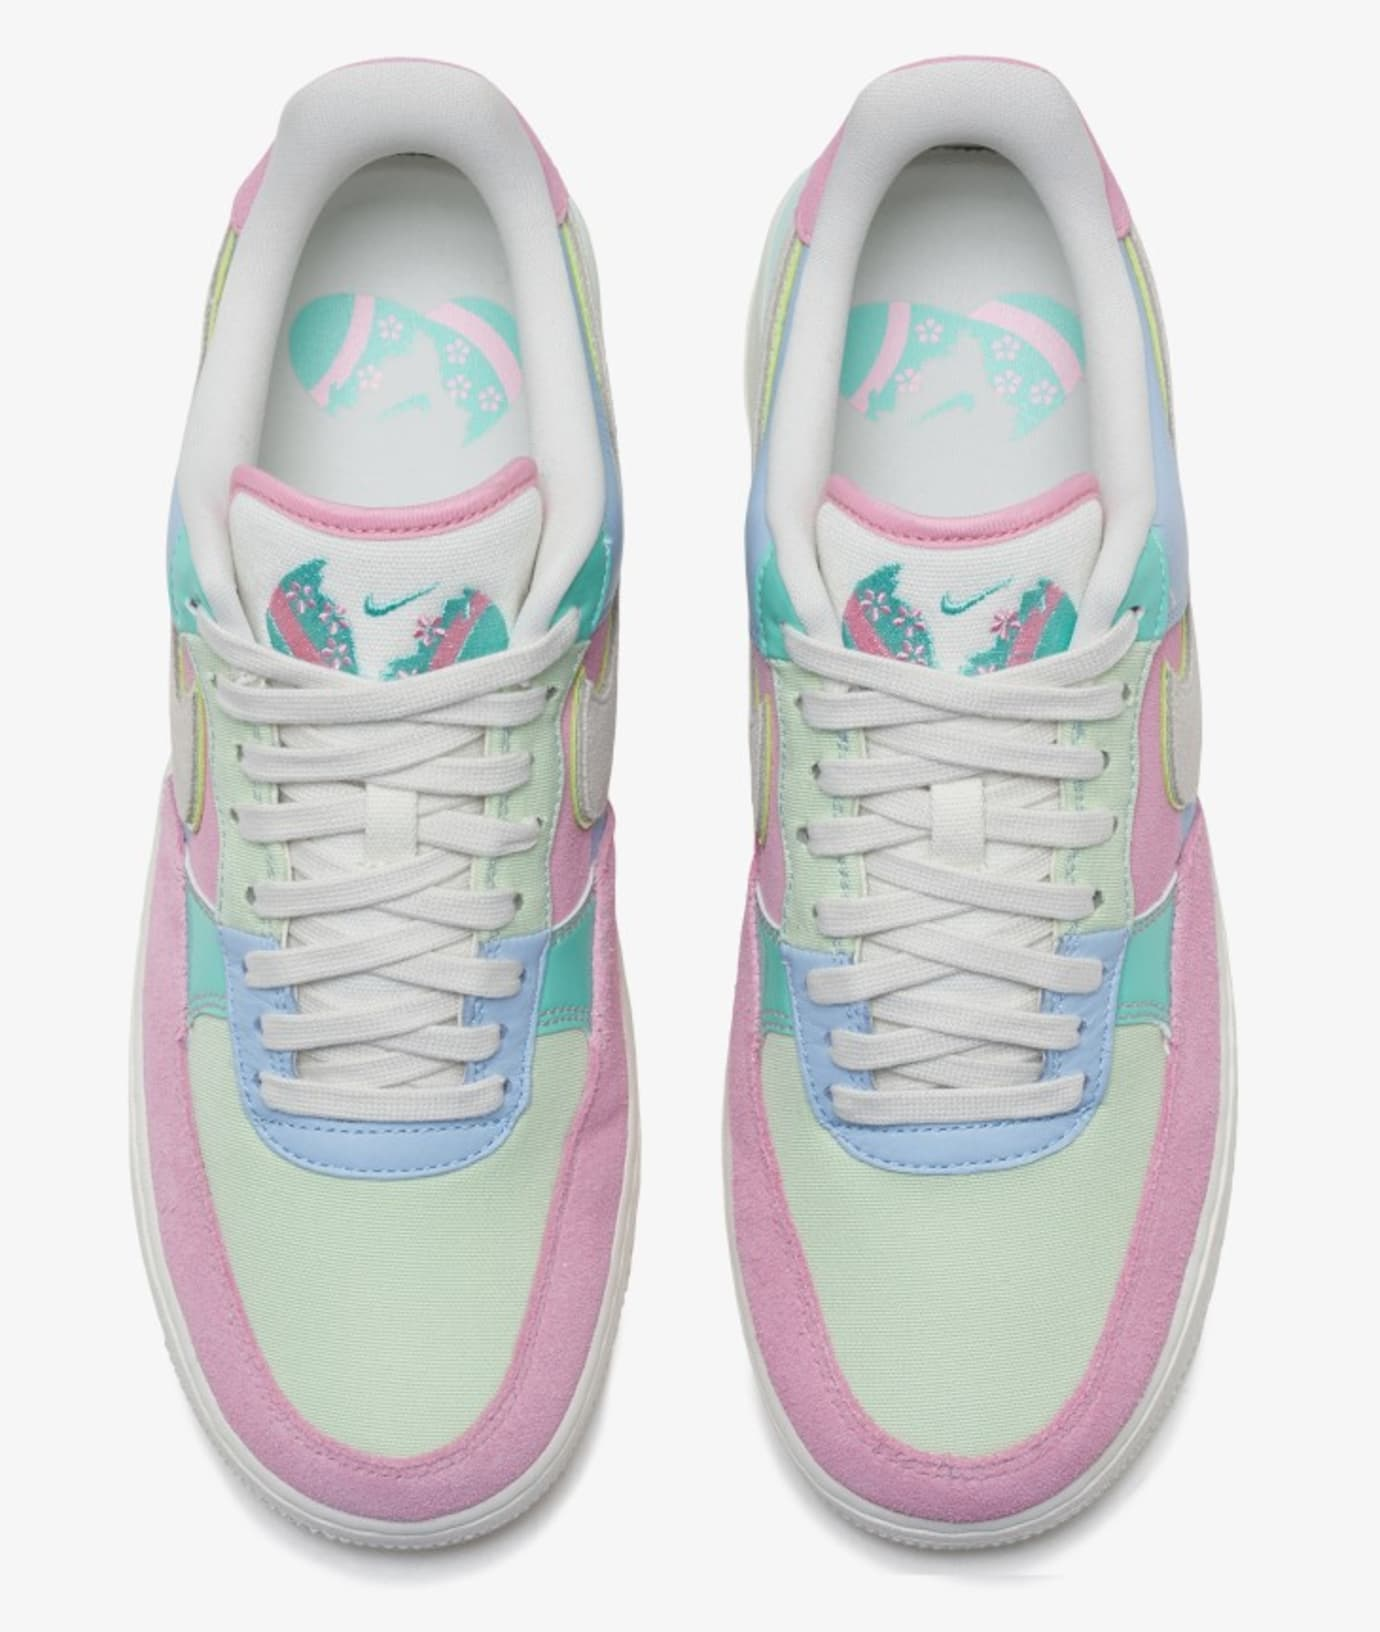 Nike Air Force 1 Low Easter 2018 Release Date AH8462 400